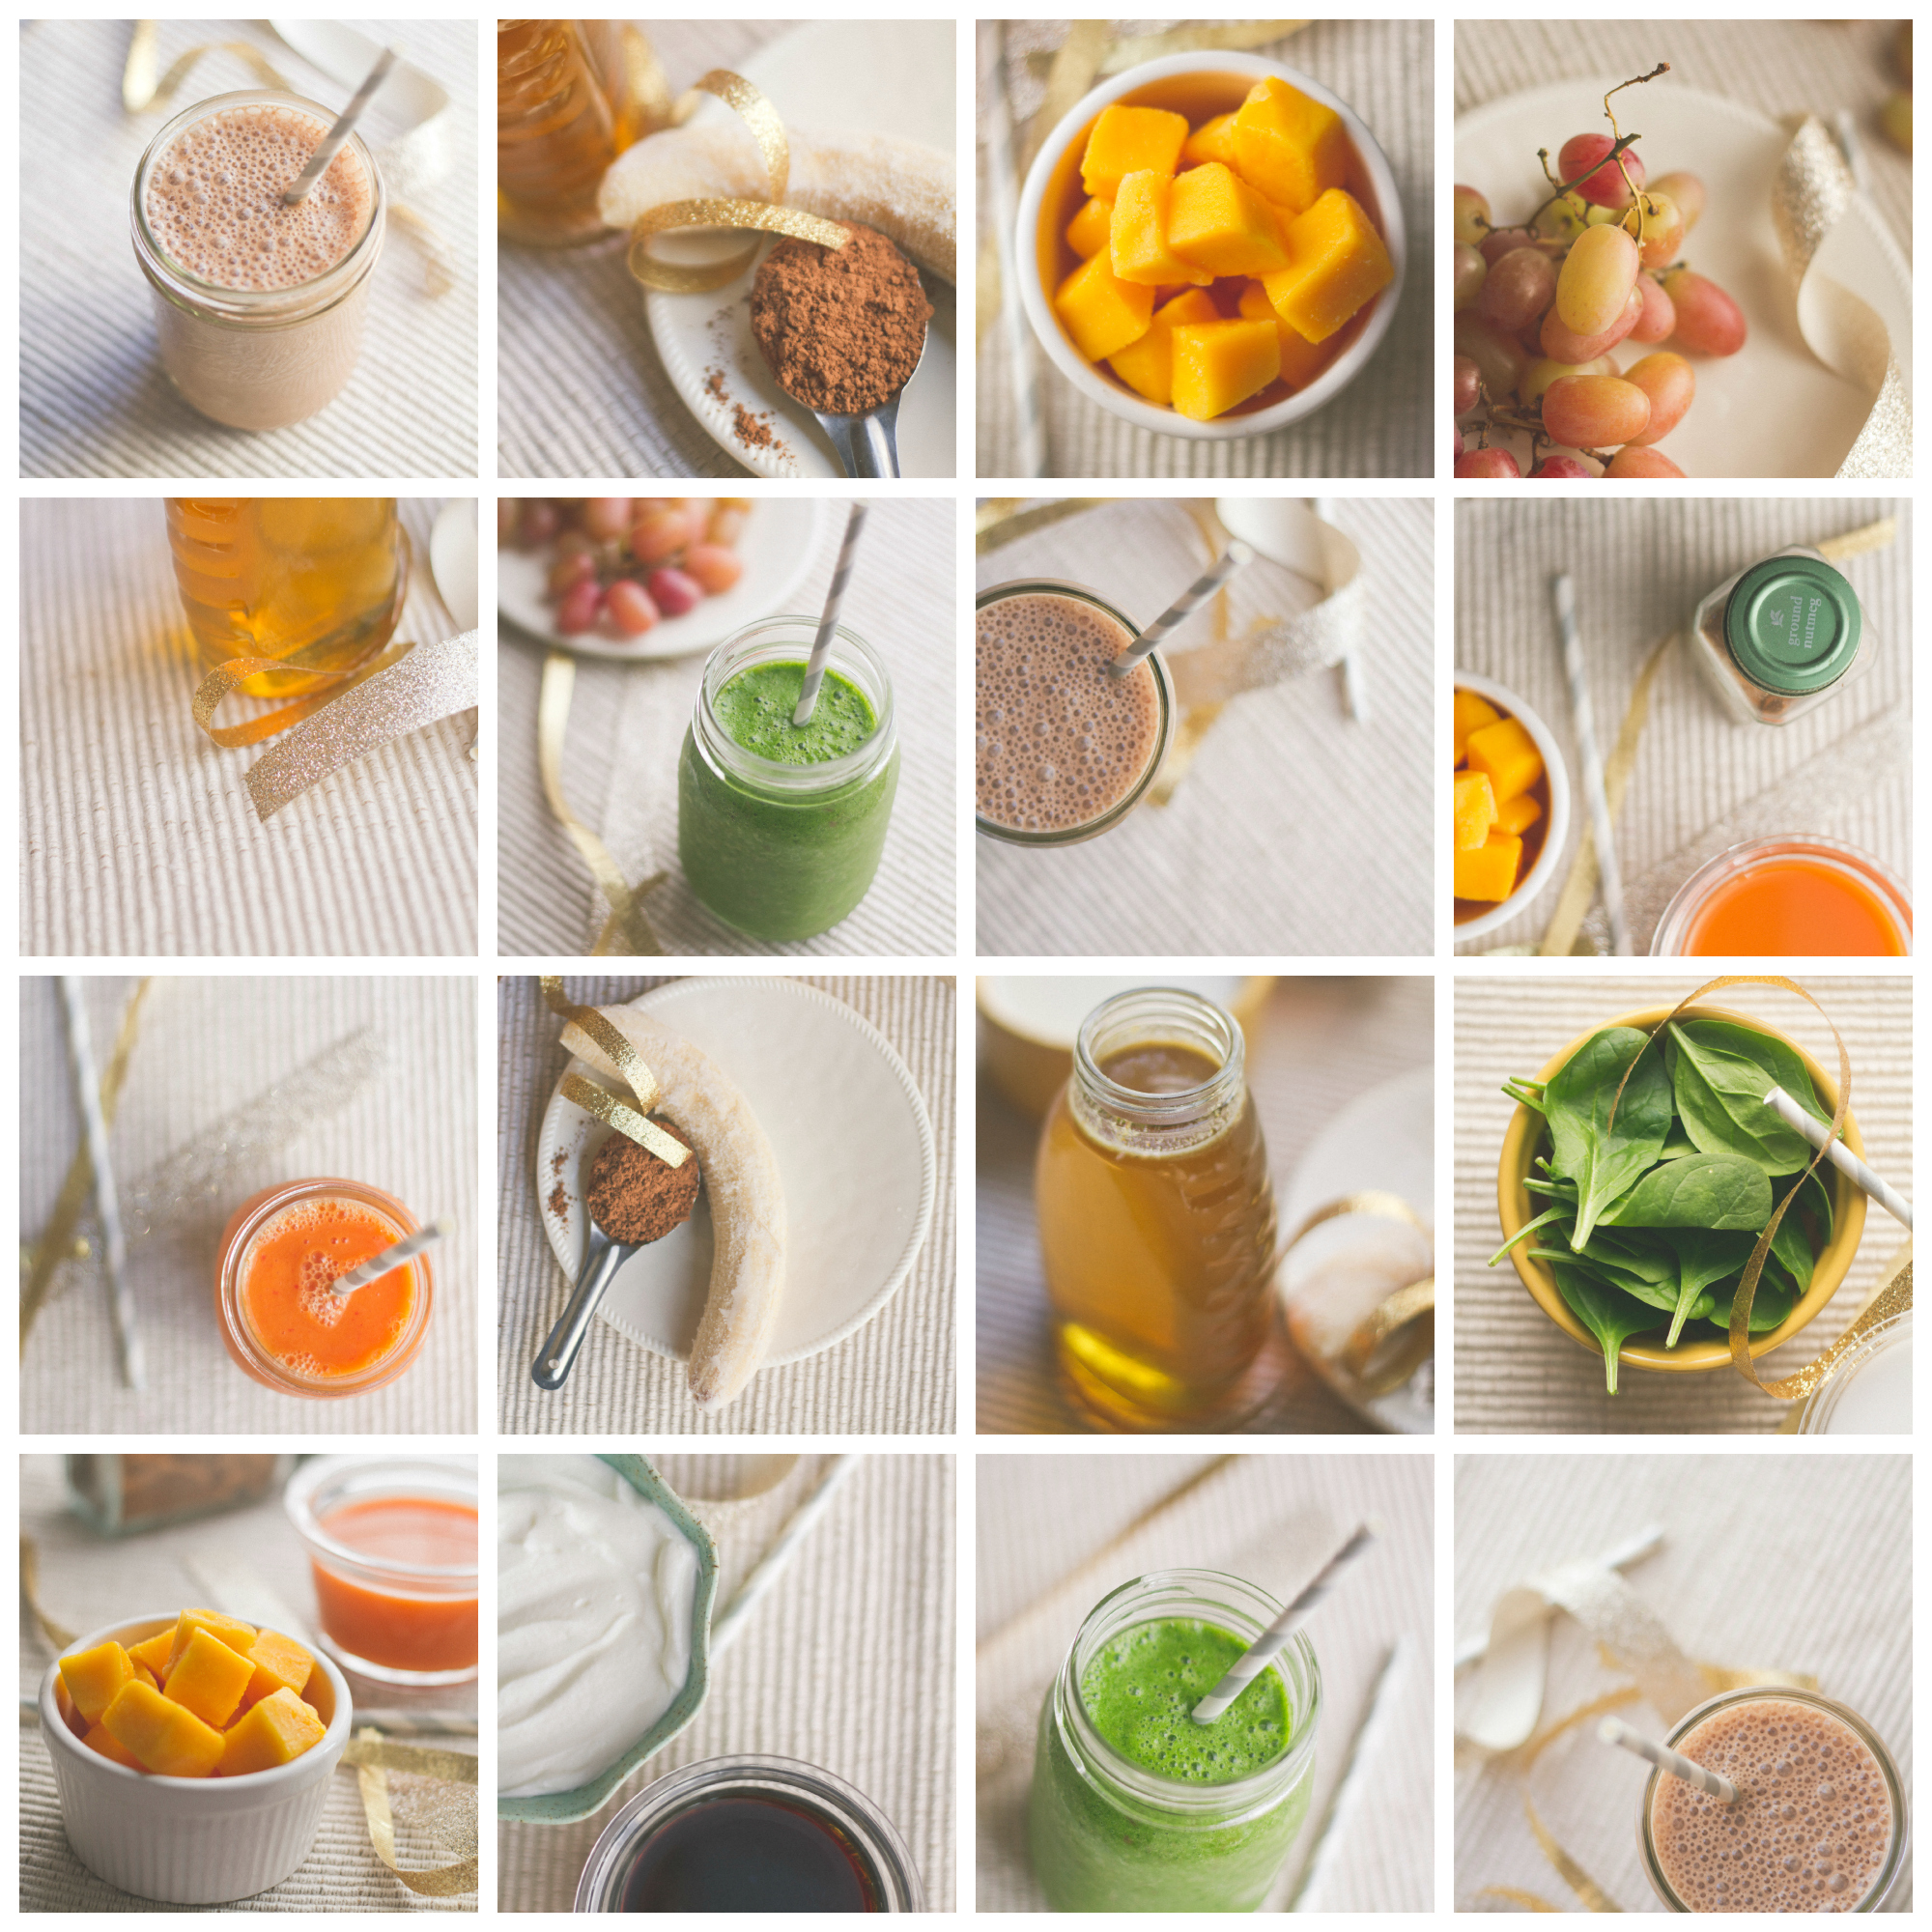 Susquehanna Style : Smoothies